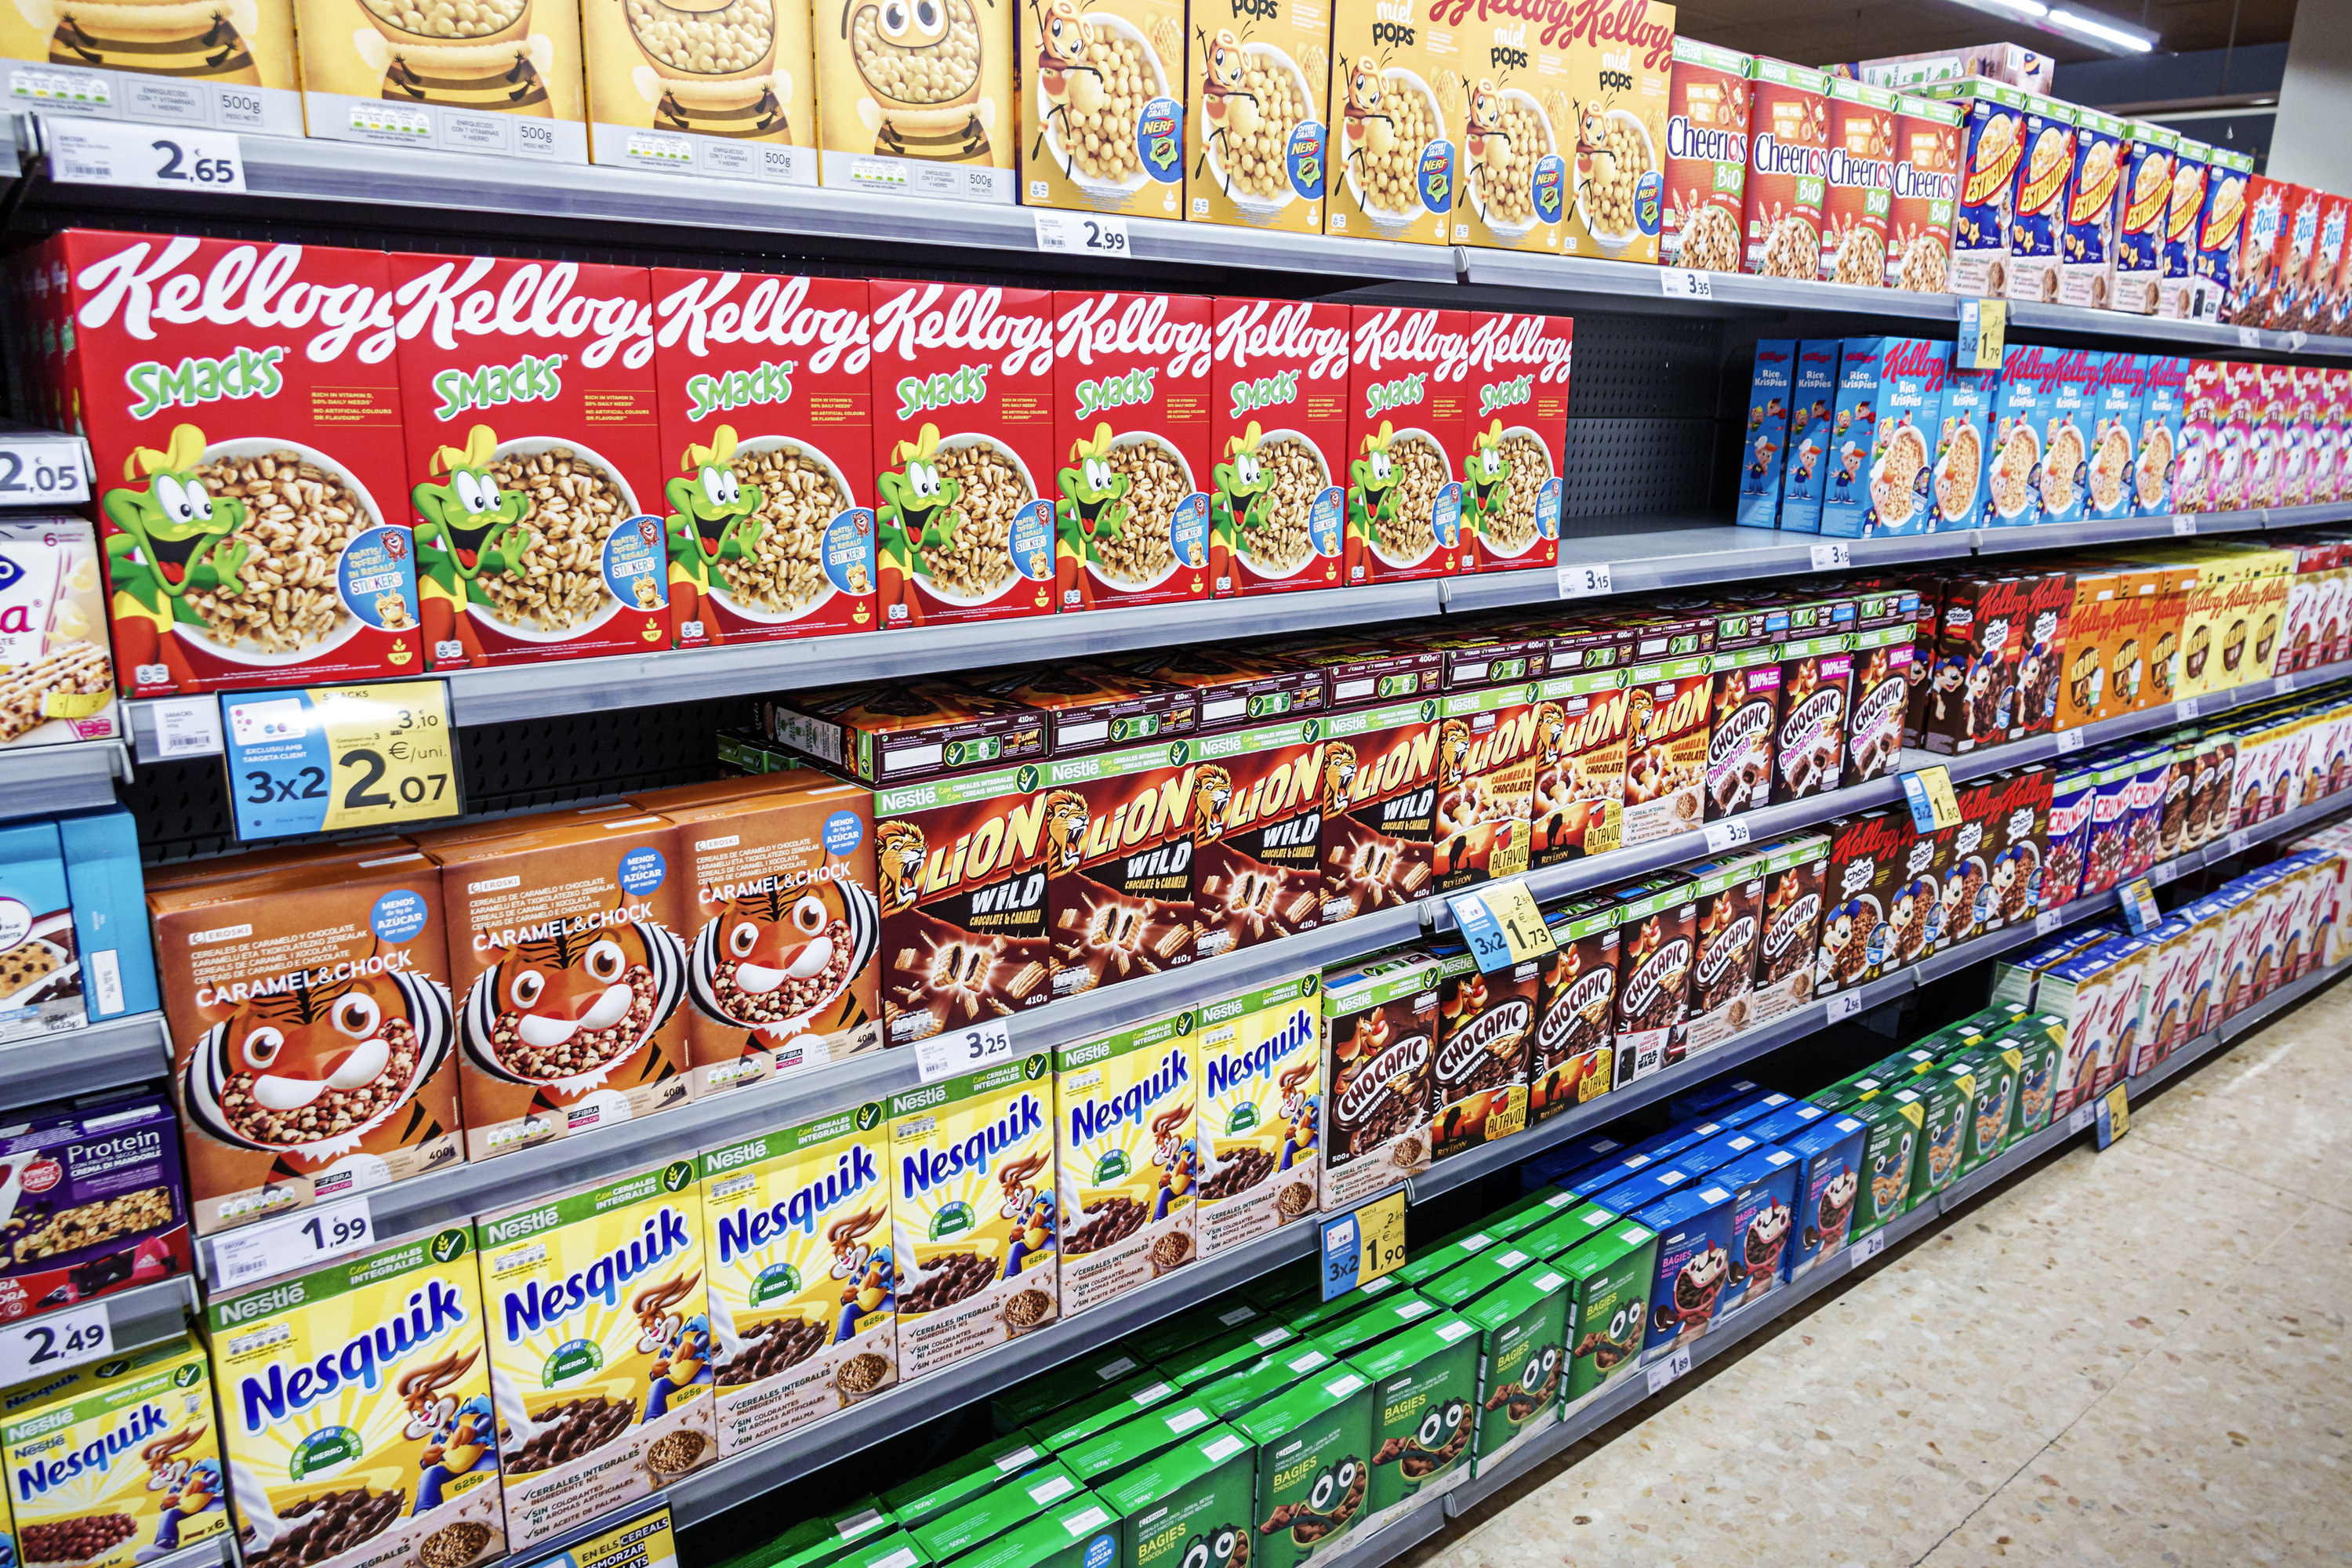 Grocery store aisle with multiple shelves stocked with different colorful cereal boxes